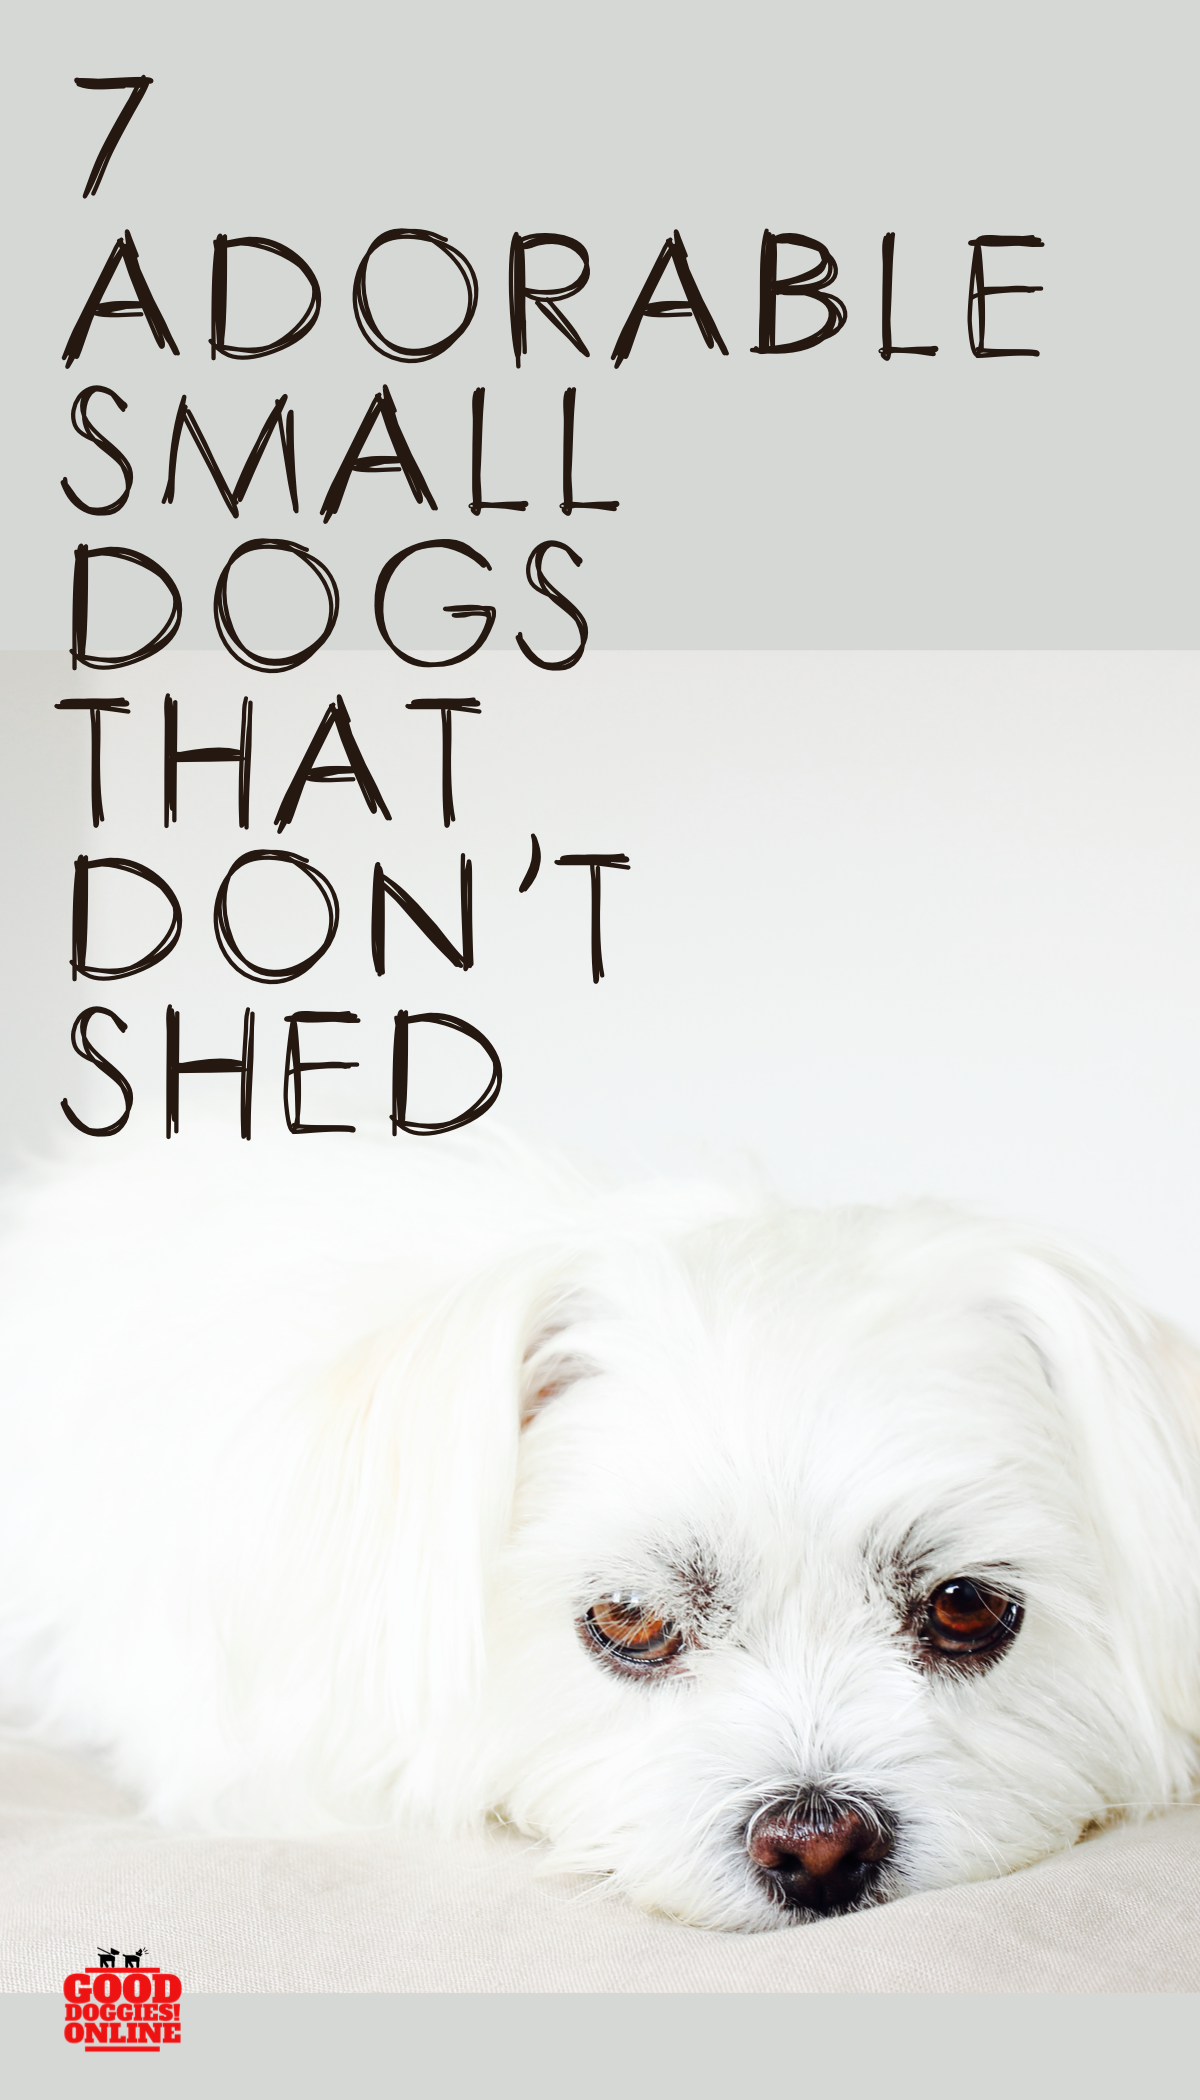 Looking For Hypoallergenic Dog Breeds That Don T Shed Check Out This List Of Small Dogs That Don T Shed Gooddoggies Do Dog Grooming Dogs List Of Small Dogs